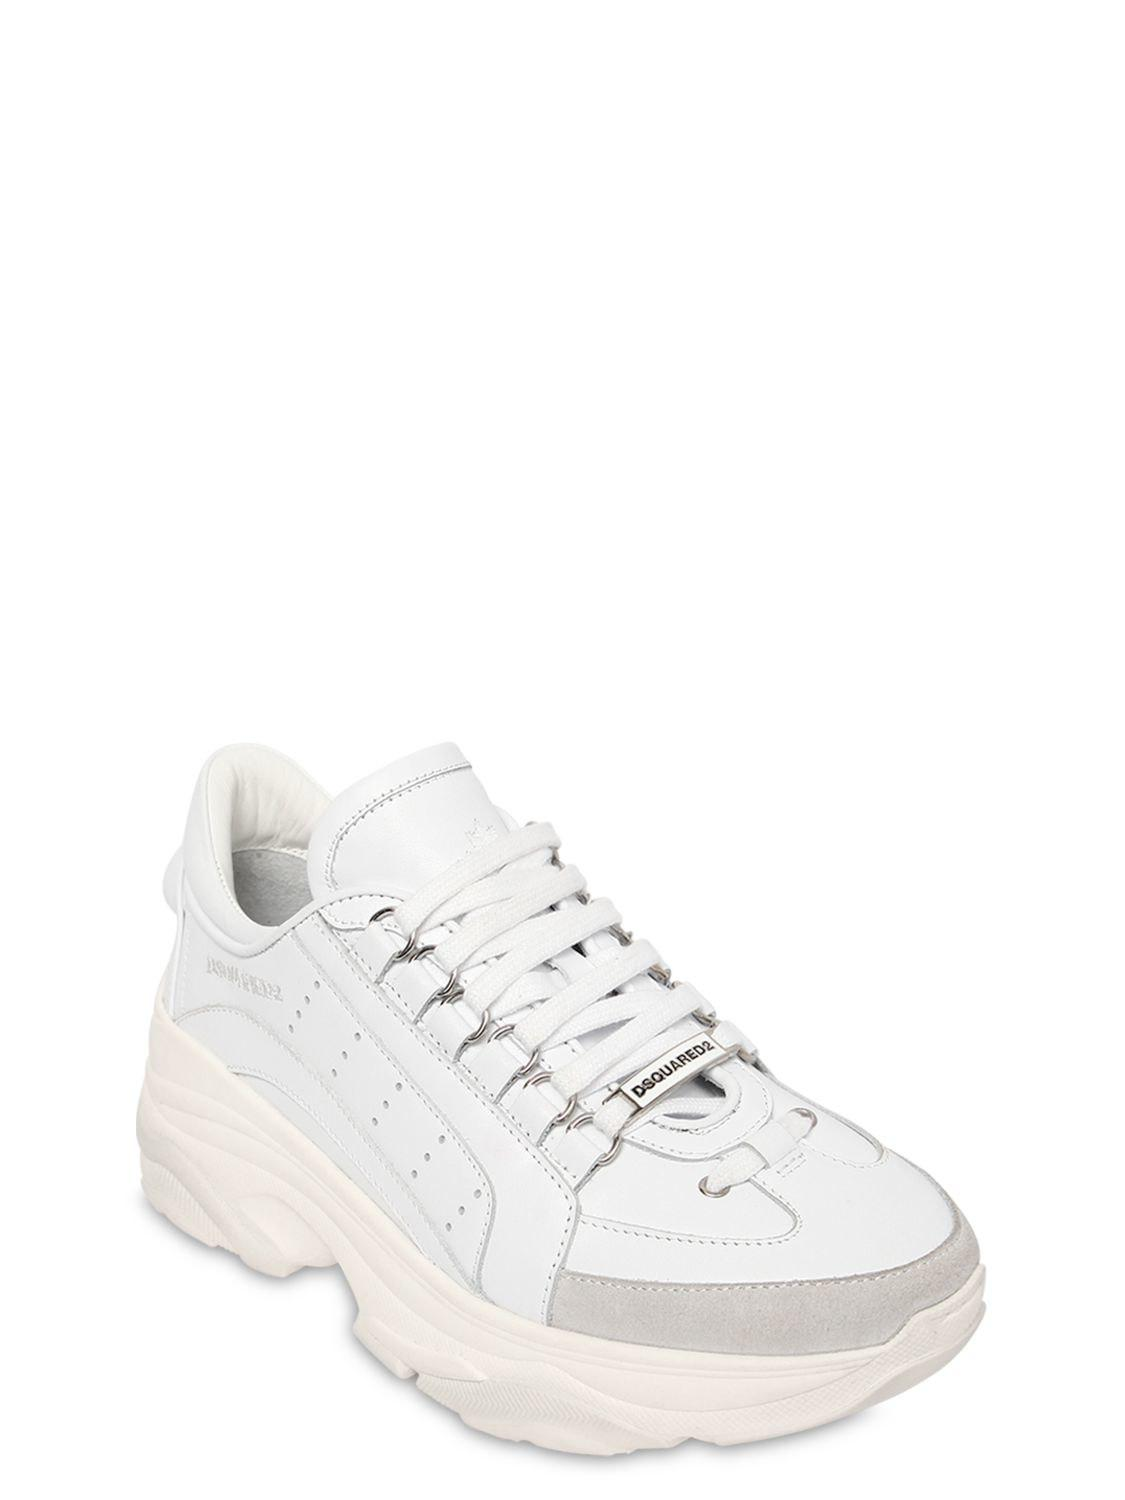 921be68aae4 Lyst - DSquared² 60mm Bumpy 551 Leather Sneakers in White